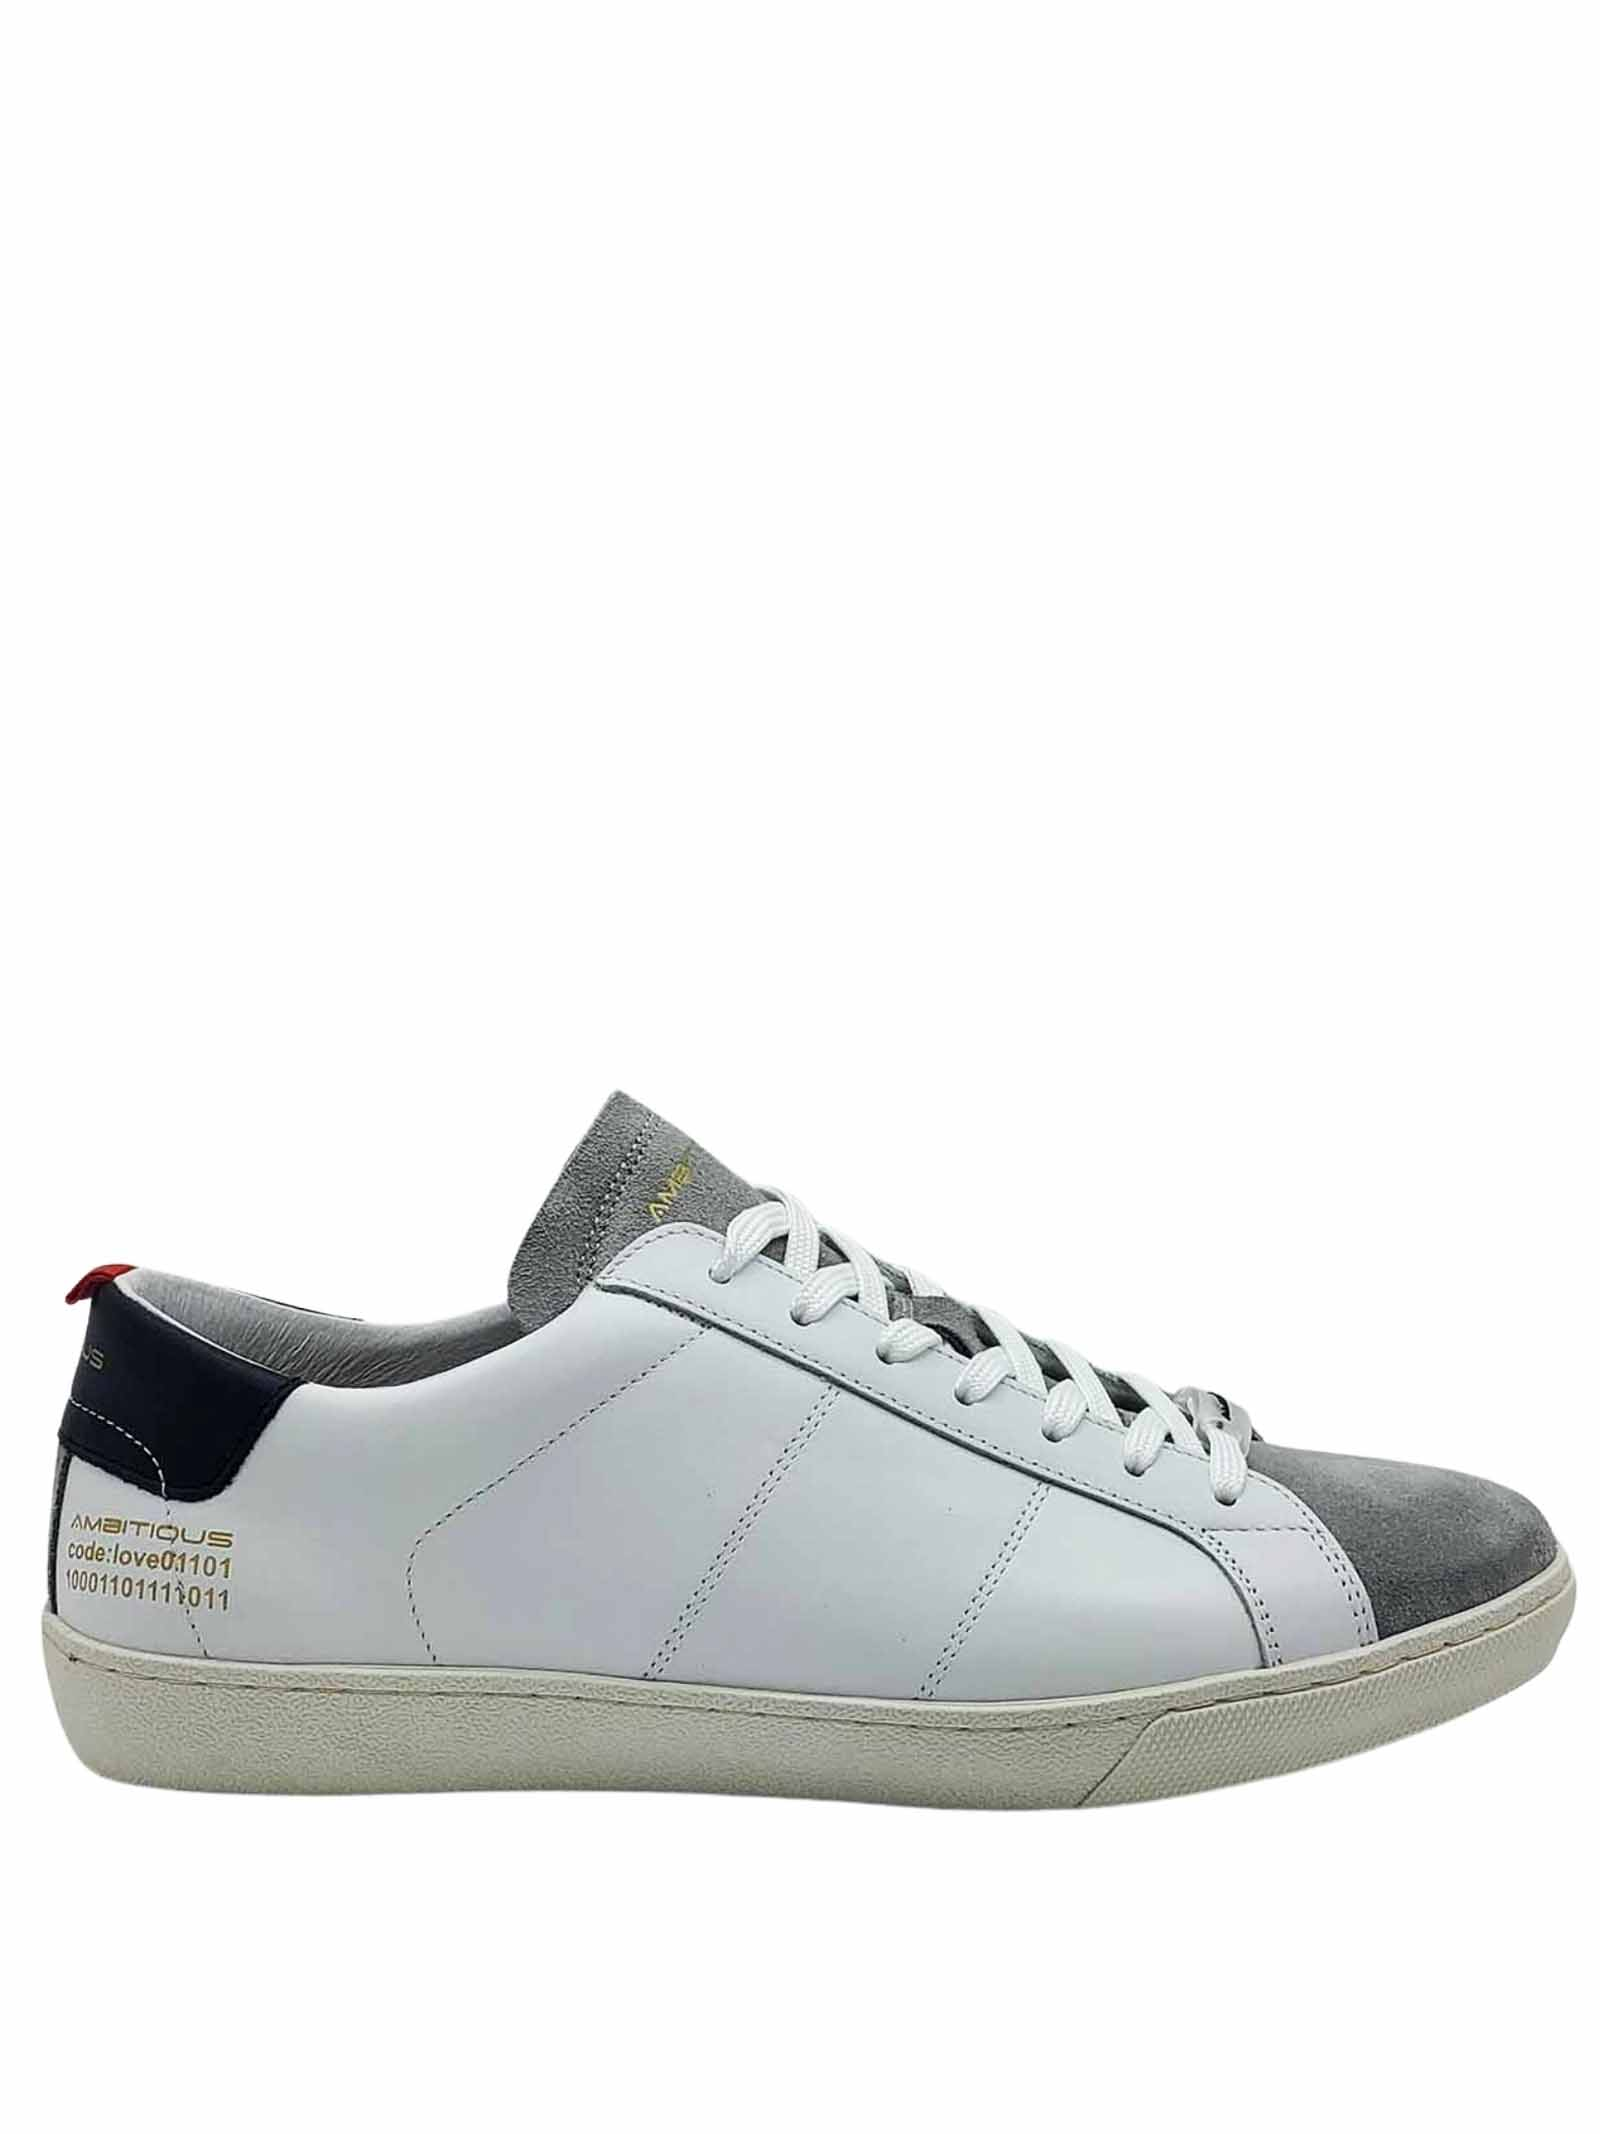 Shoes Sneakers Men Lace-up in White Leather and Off White Suede with Rubber Bottom Ambitious | Sneakers | 8102100